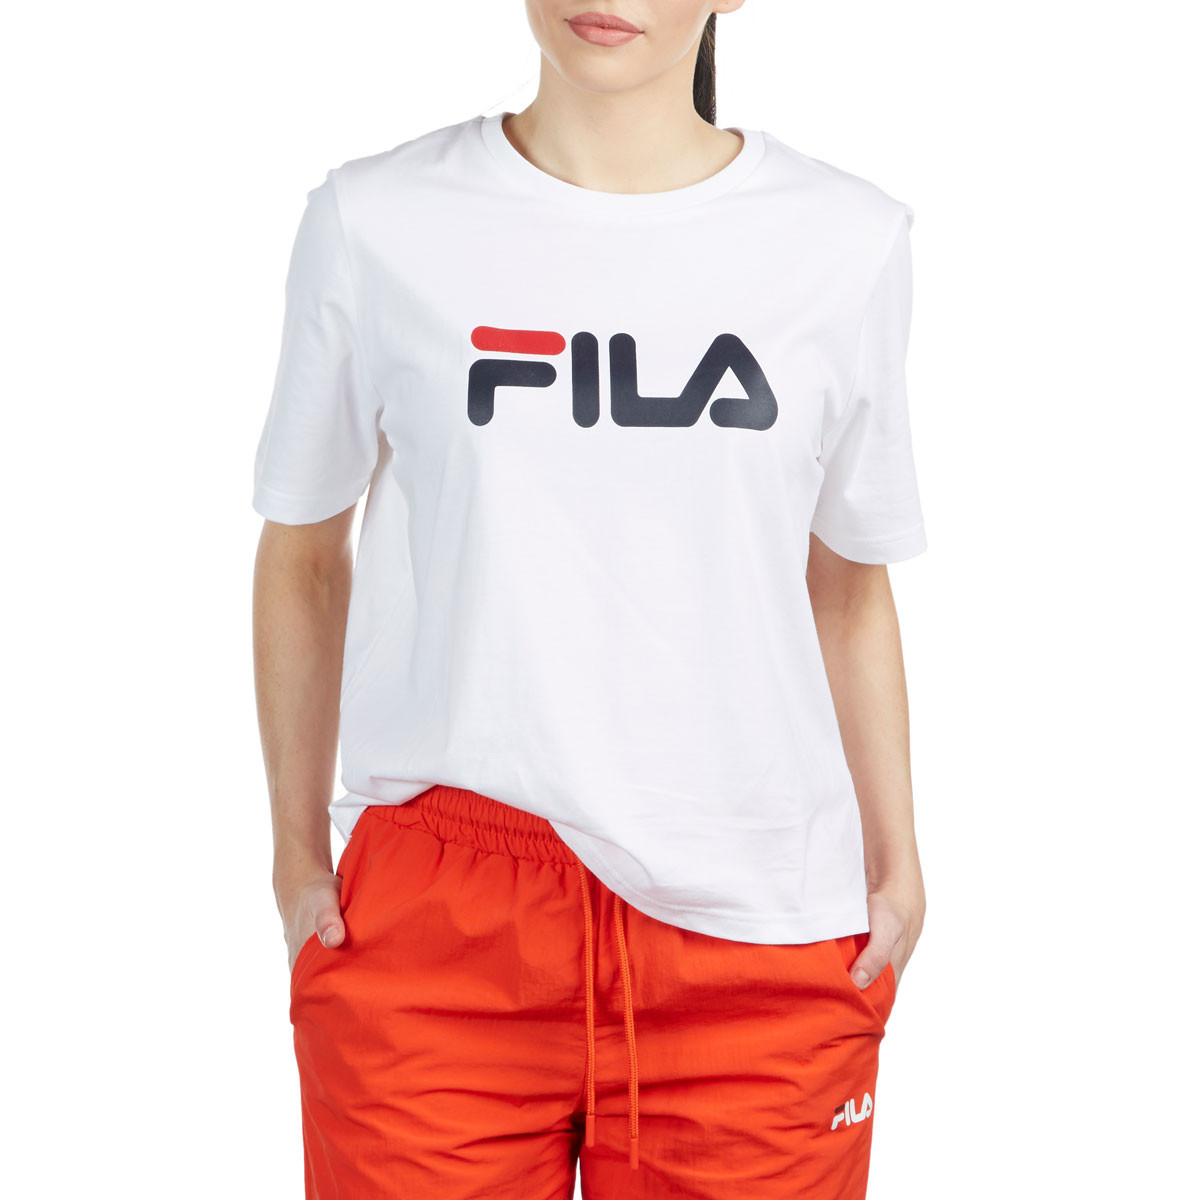 bf4c0b89 FILA Womens Miss Eagle T-Shirt - White/Chinese Red/Peacoat